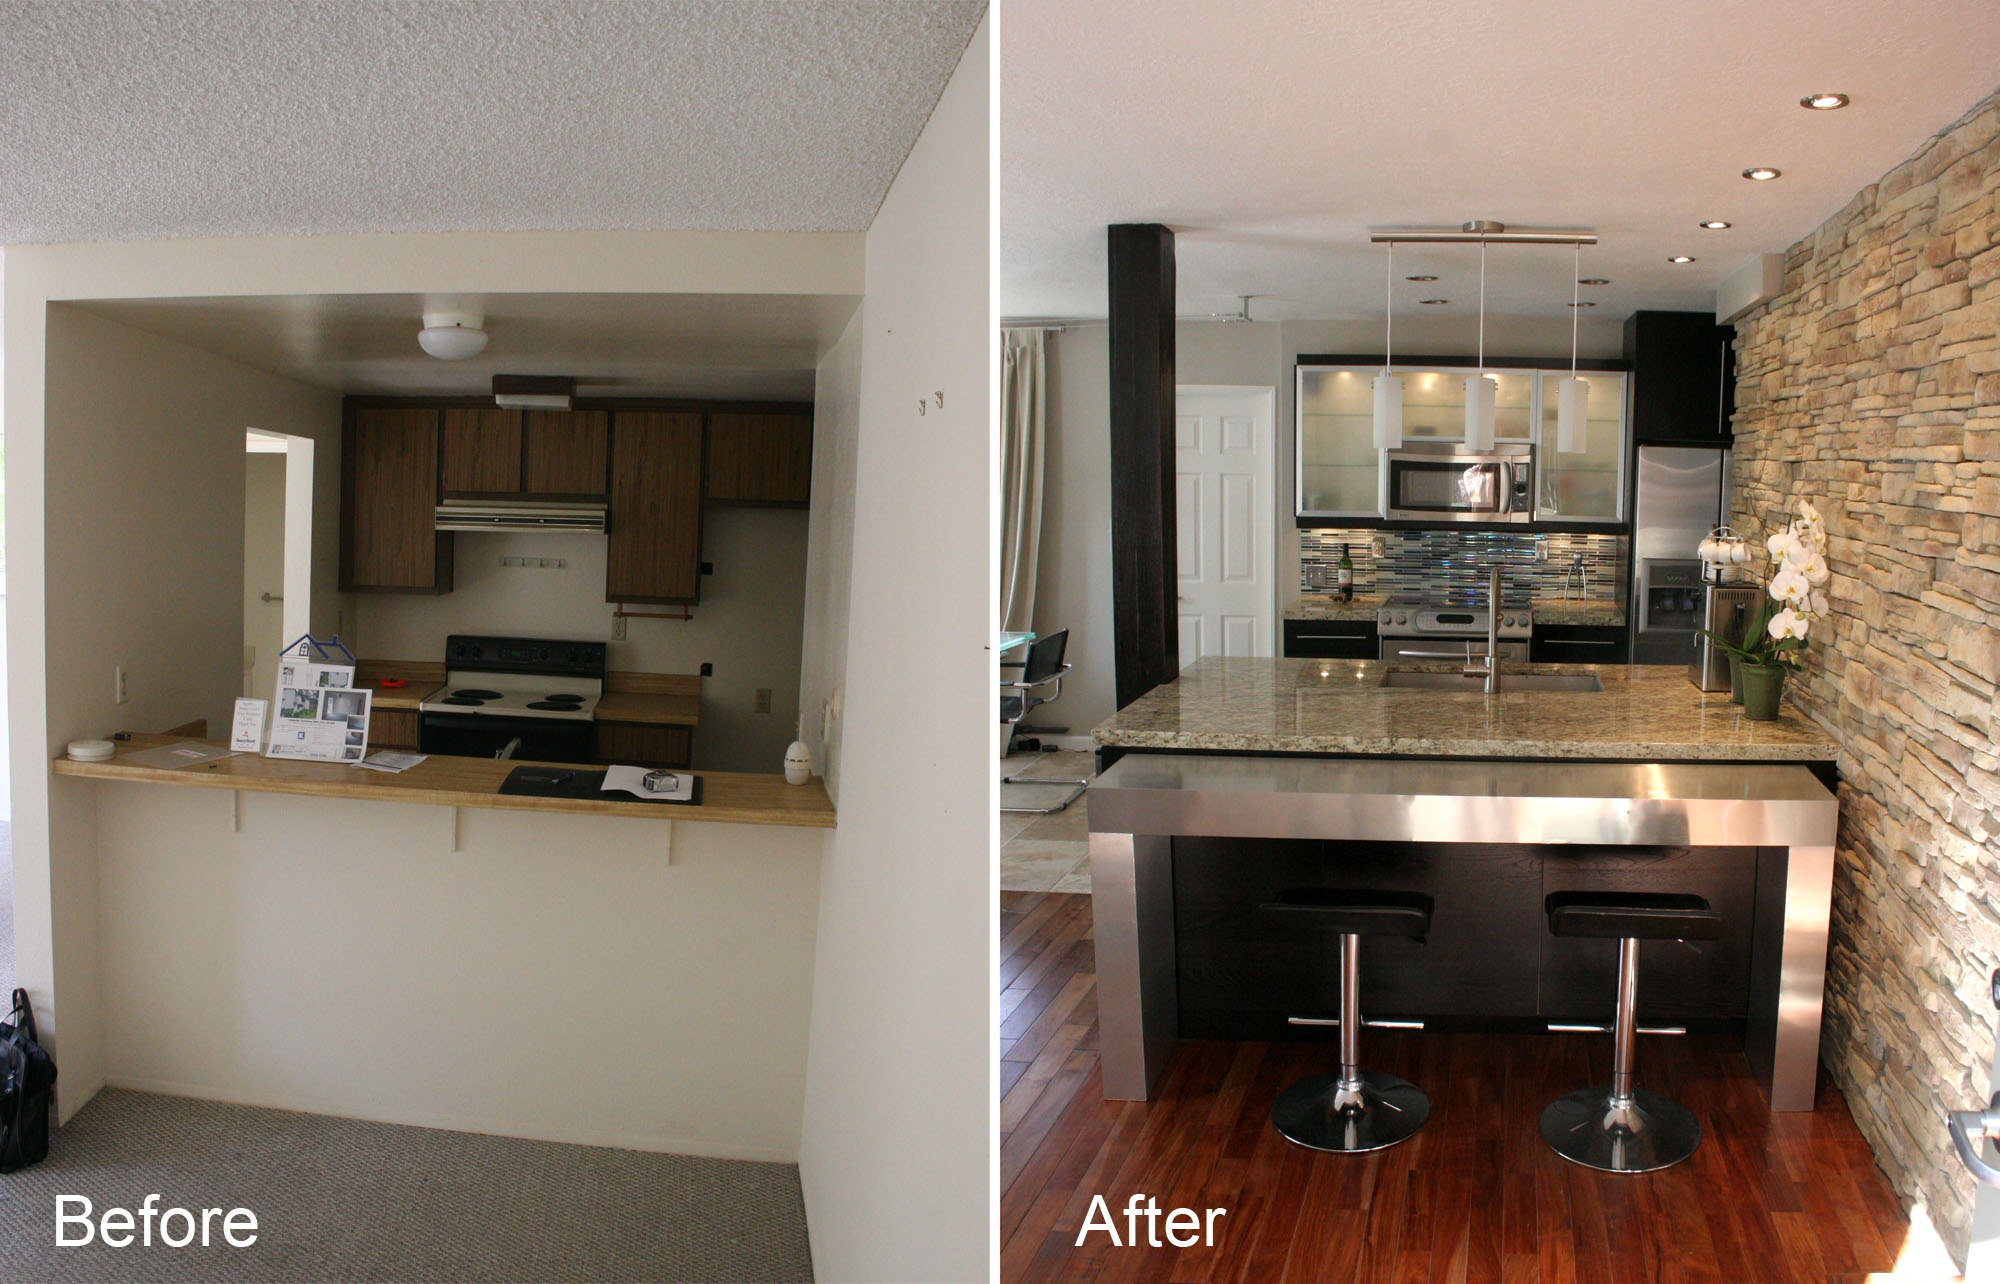 Renovation Ideas Before And After Inspiration Before And After Kitchen Remodel  Home Design Design Ideas